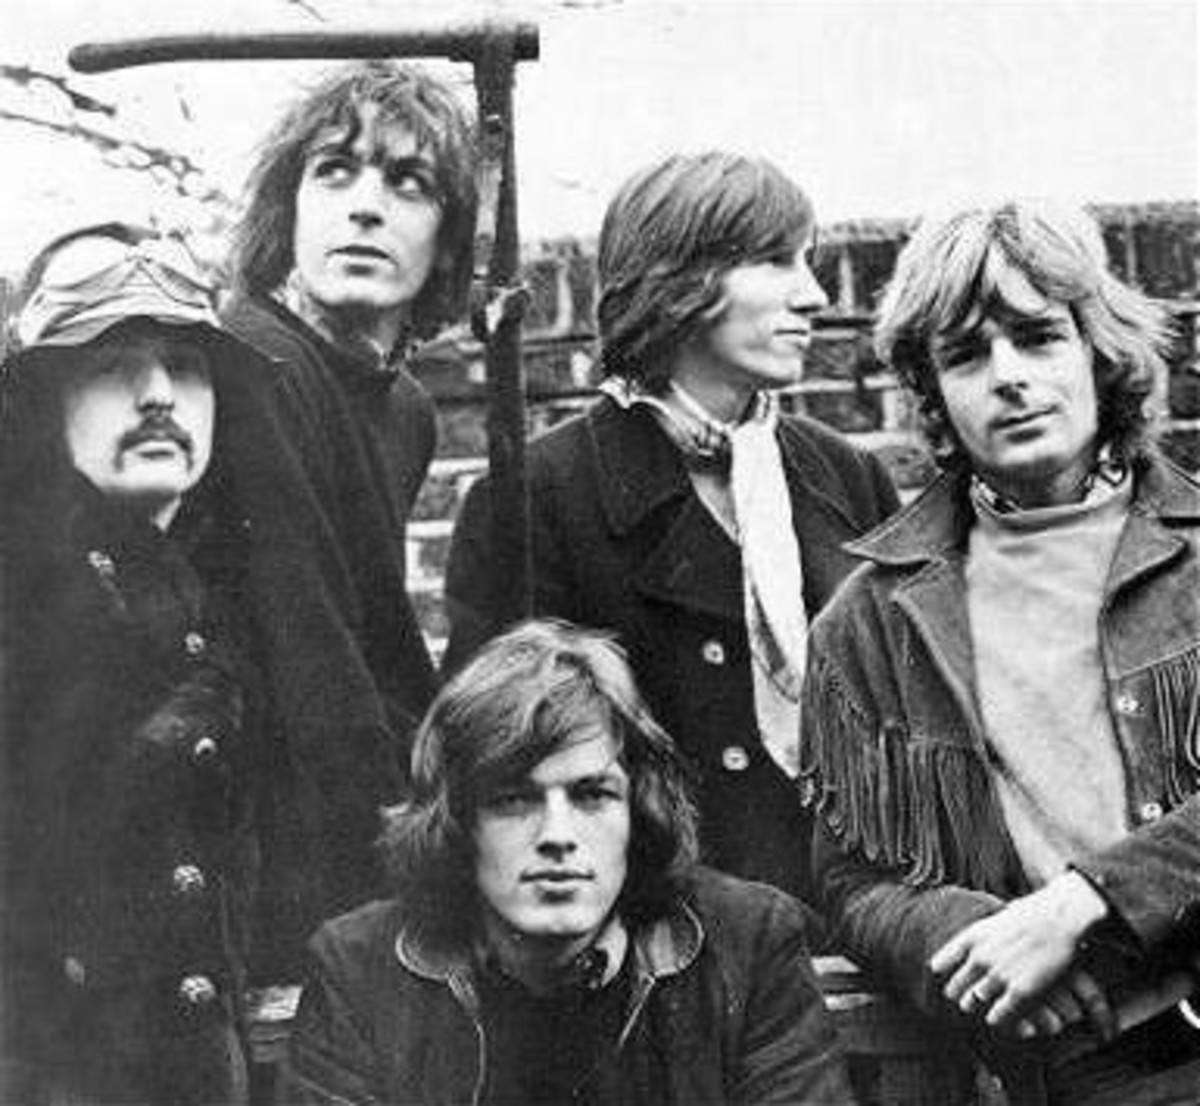 This rare photo of the original five Pink Floyd members includes (clockwise from bottom) David Gilmour, Nick Mason, Syd Barrett, Roger Waters and Richard Wright. All except Gilmour studied either art or architecture in London.